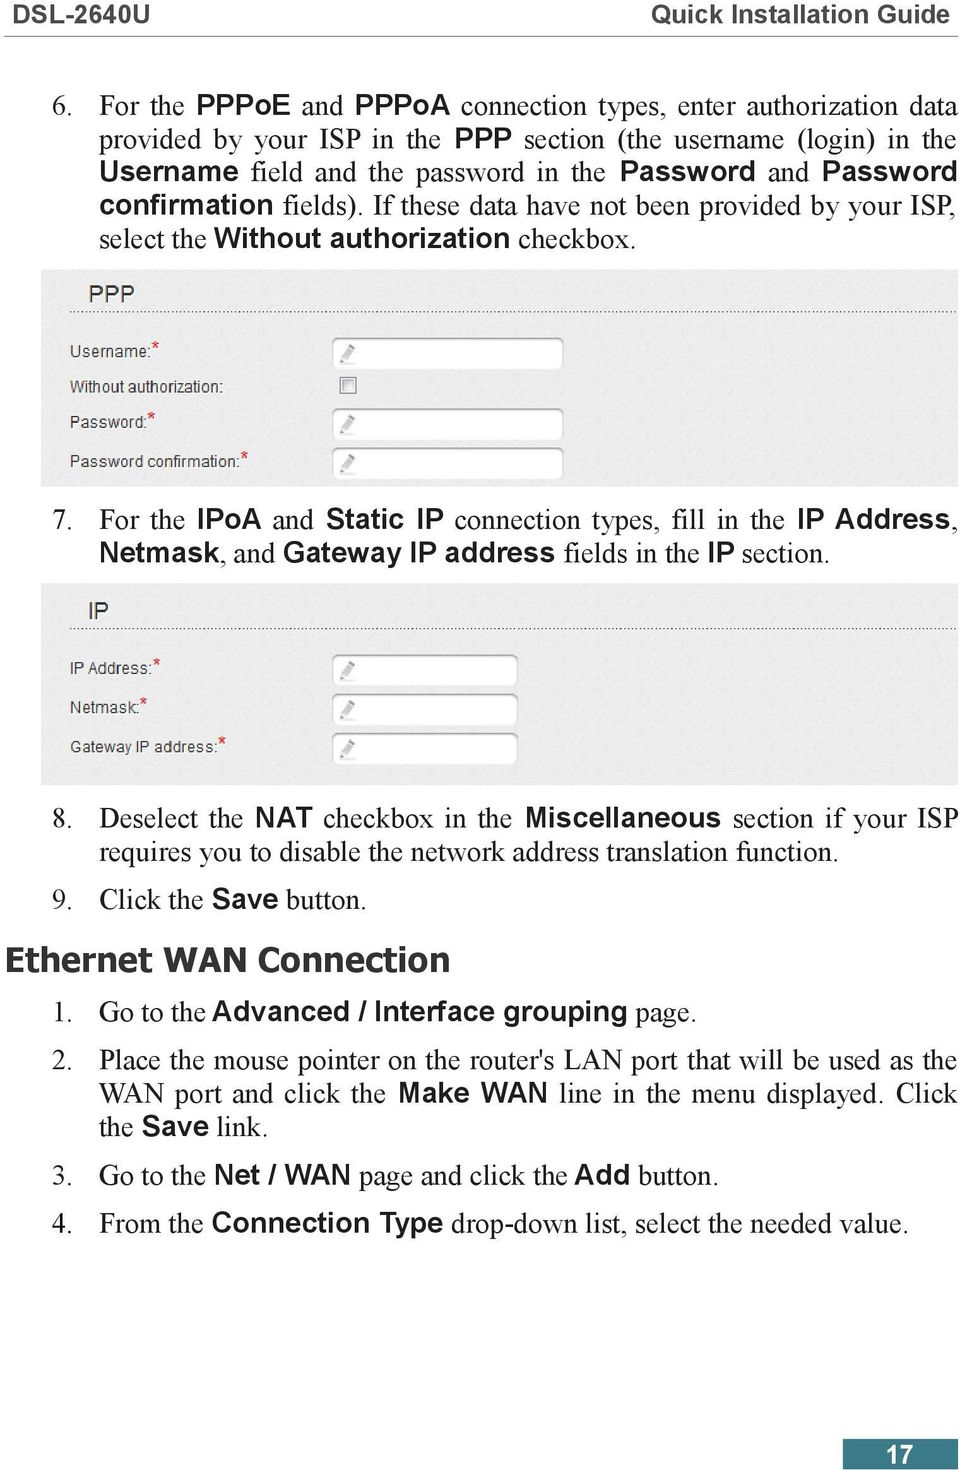 For the IPoA and Static IP connection types, fill in the IP Address, Netmask, and Gateway IP address fields in the IP section. 8.